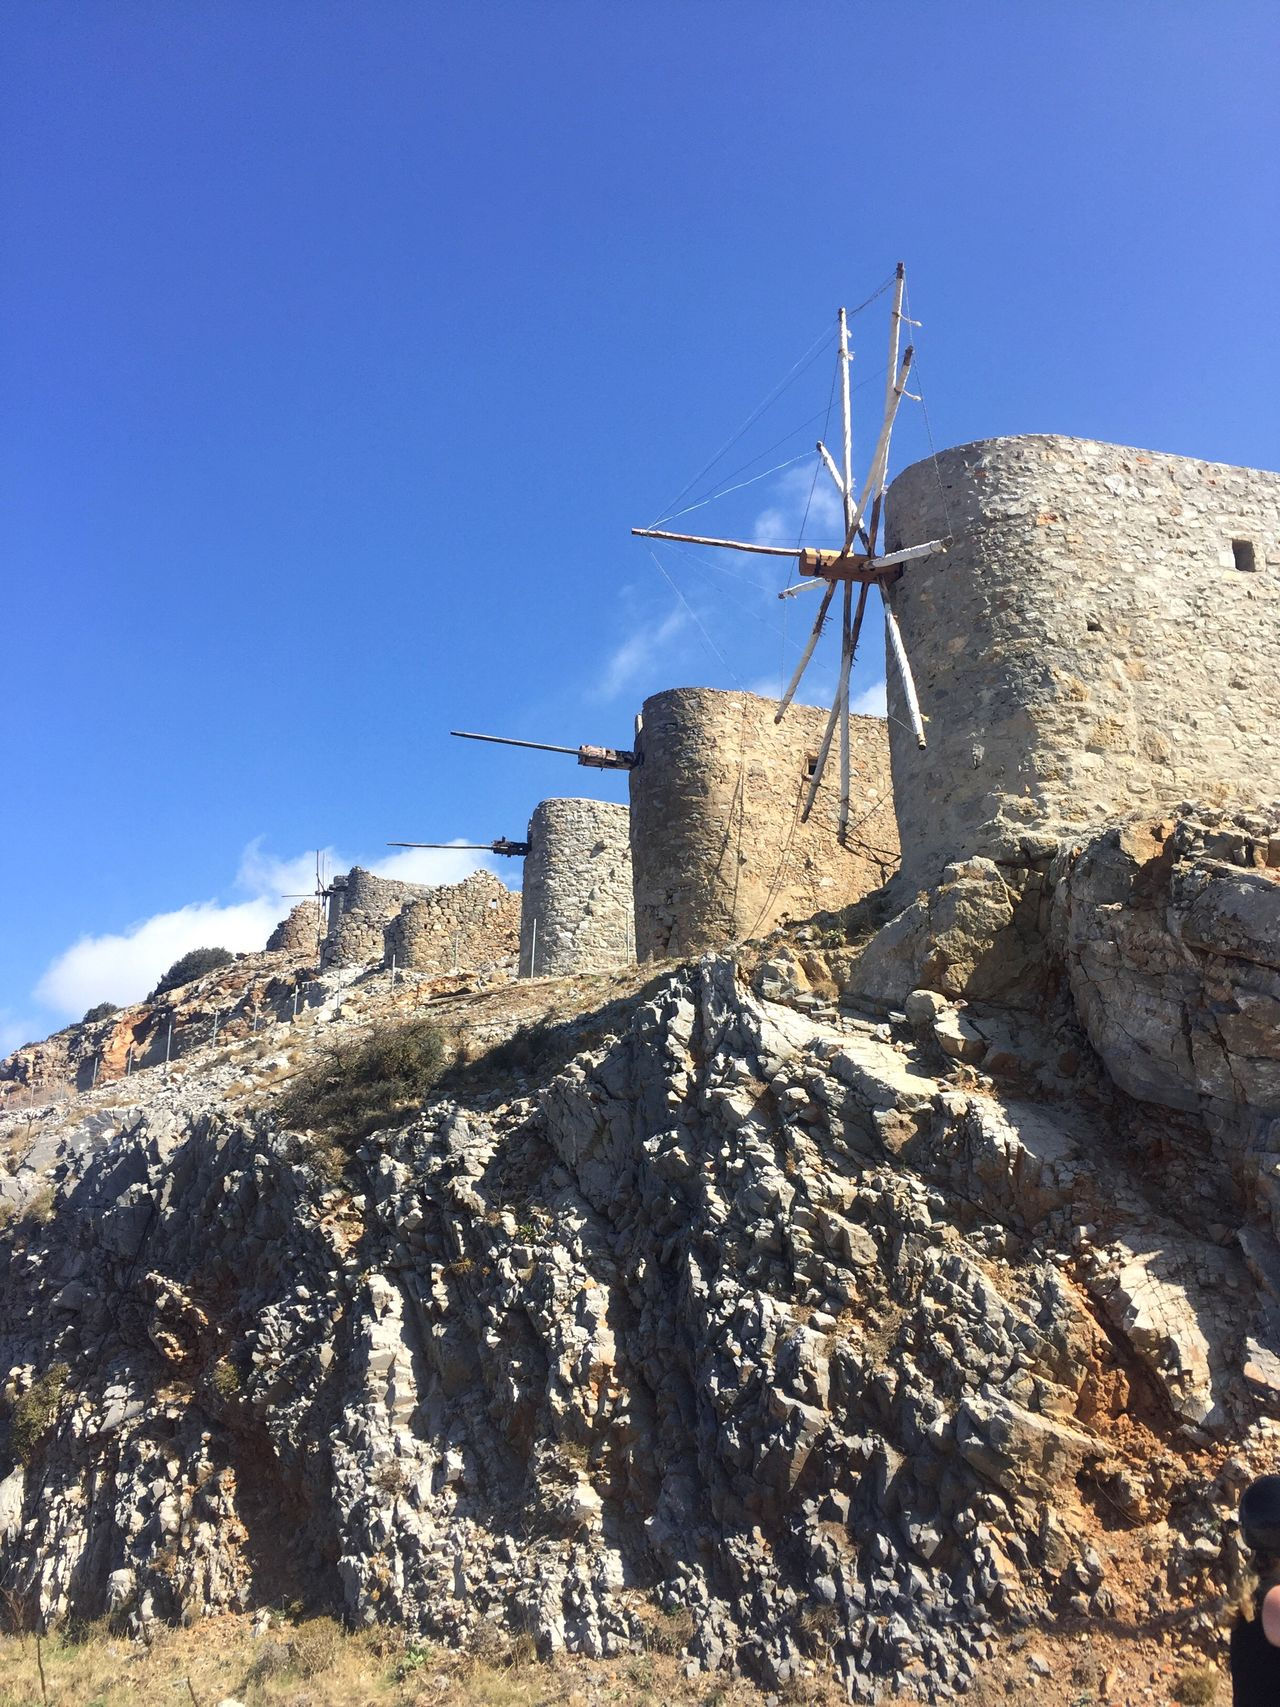 Crete Crete Greece Greece Windmill Windmills Holidays Sunshine Blue Sky Hills Hillside Beautiful Clear Sky Blue